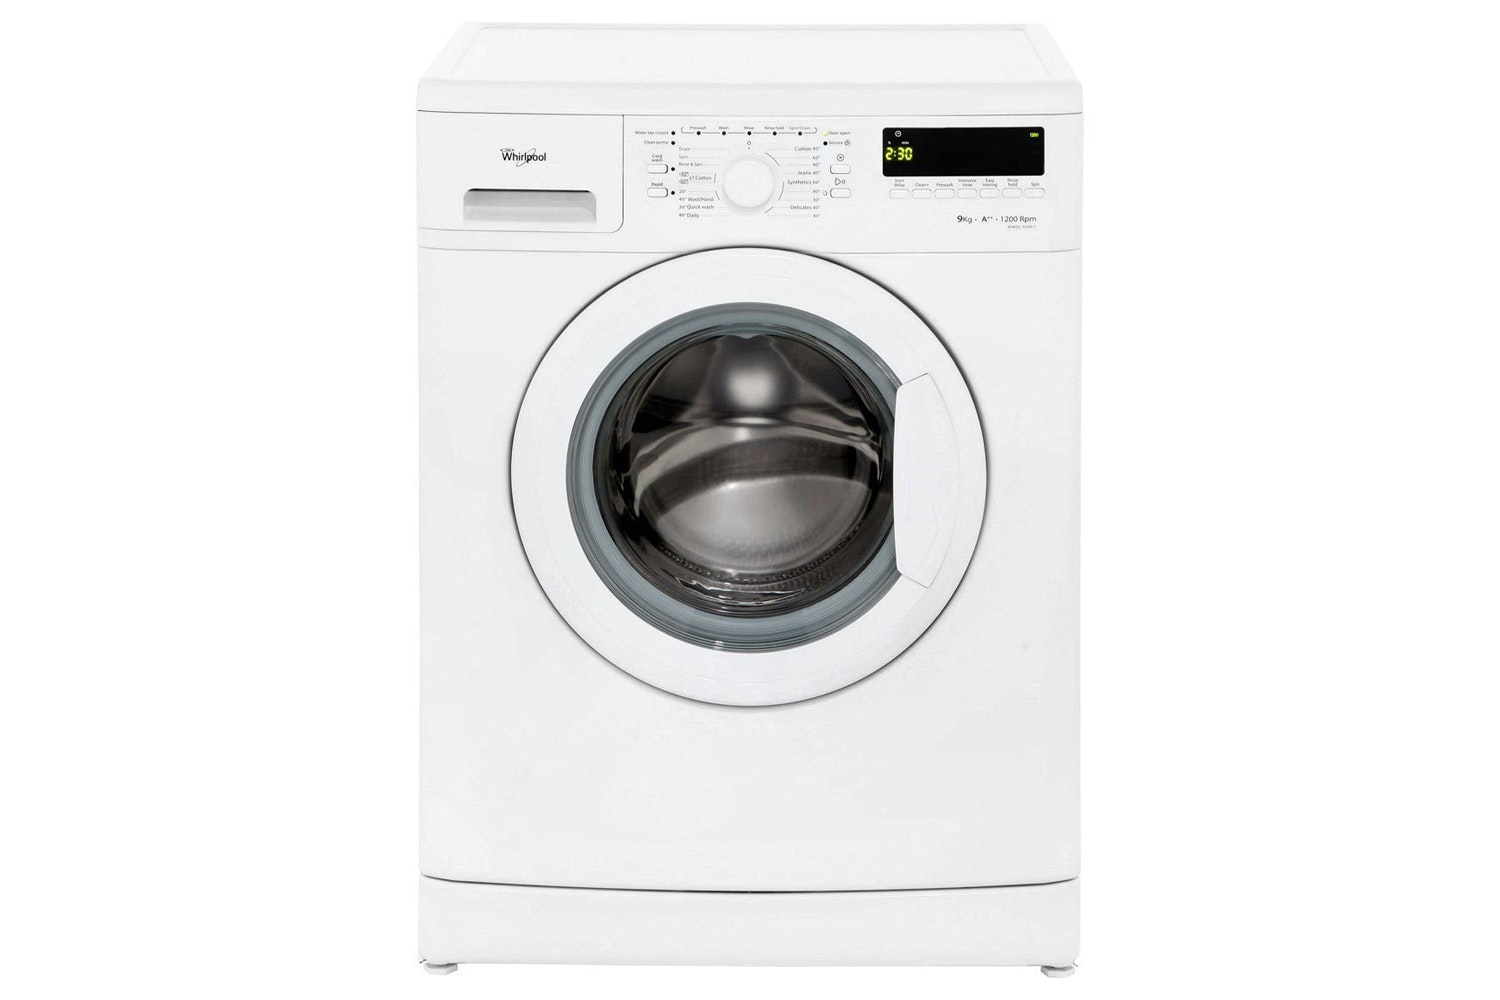 Whirlpool 9kg Washing Machine | WWDC9200/1